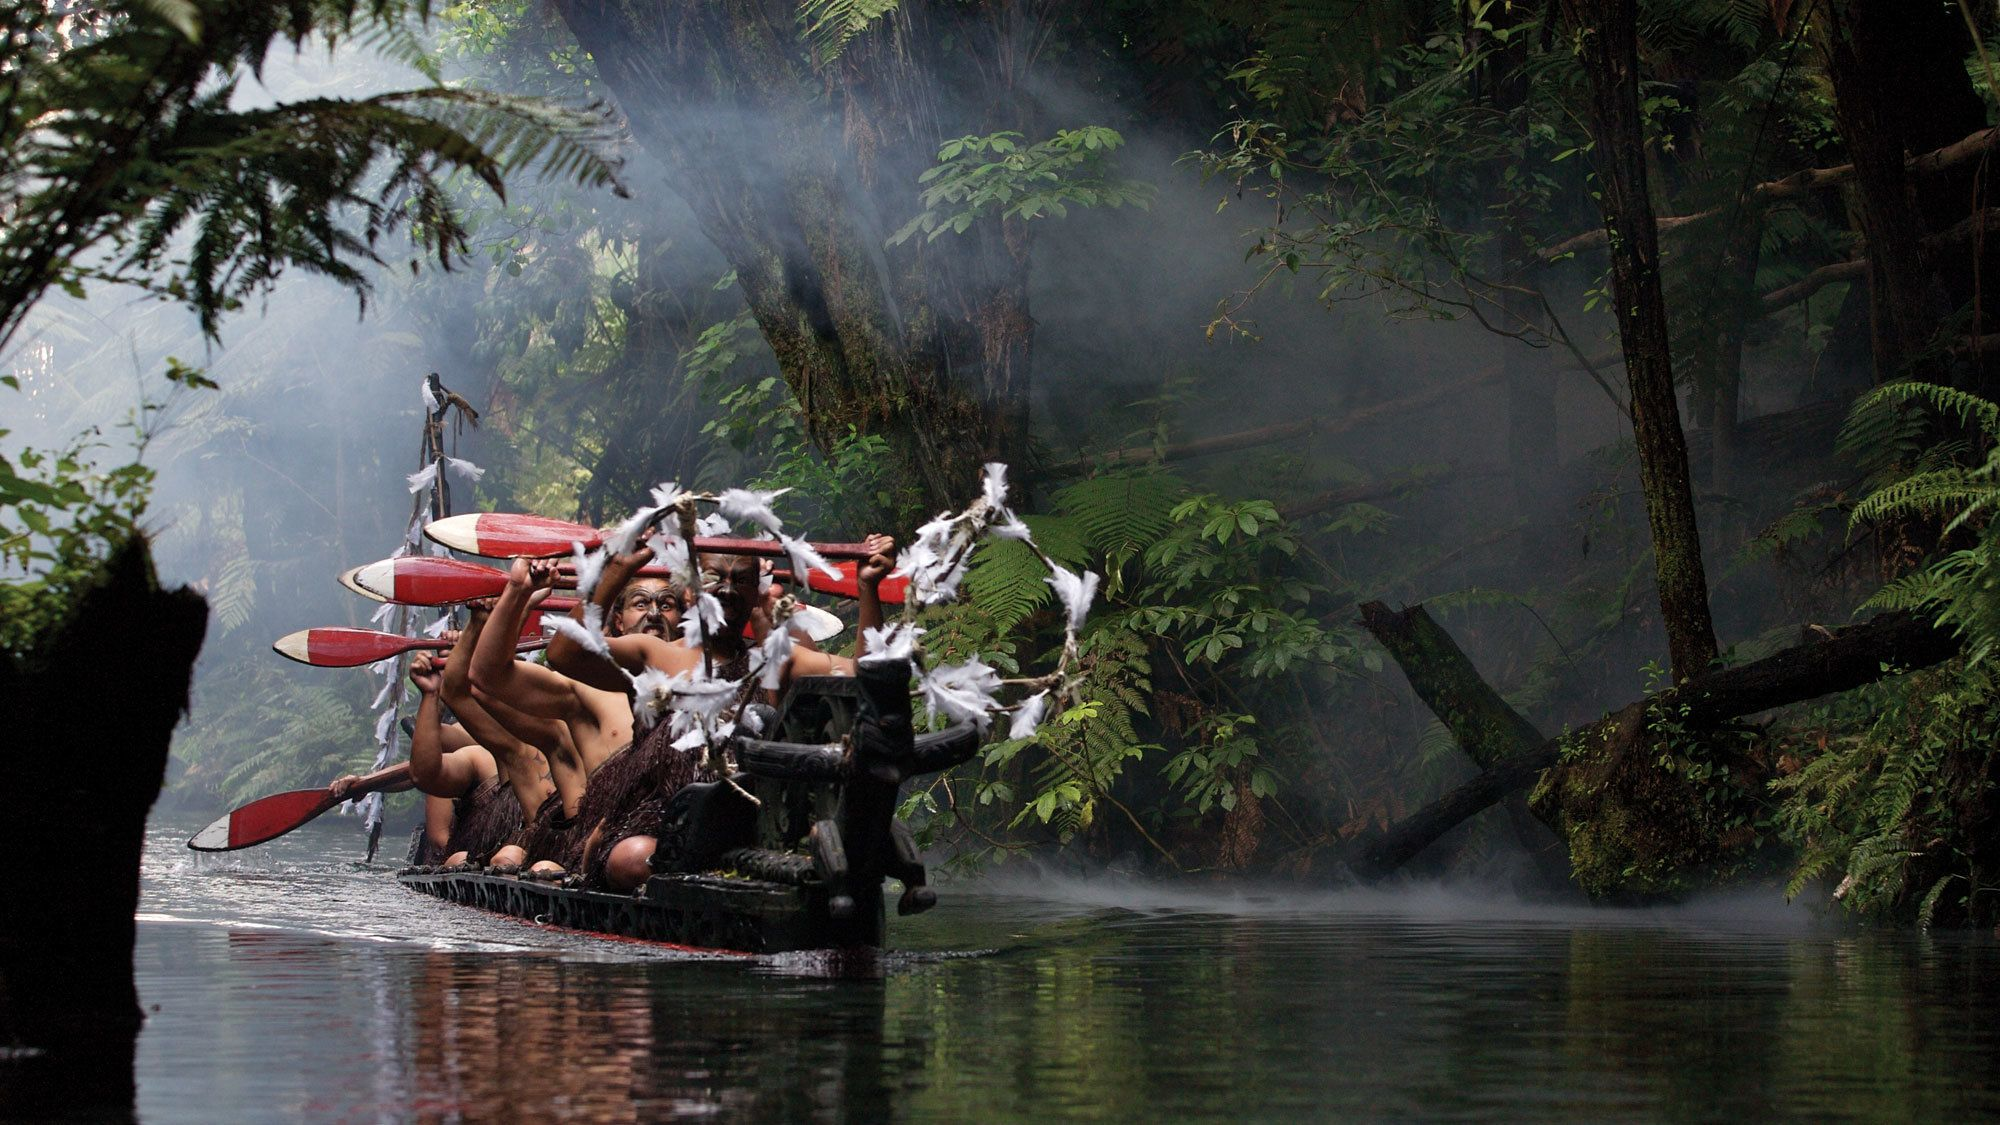 tribespeople rowing a small wooden raft in New Zealand